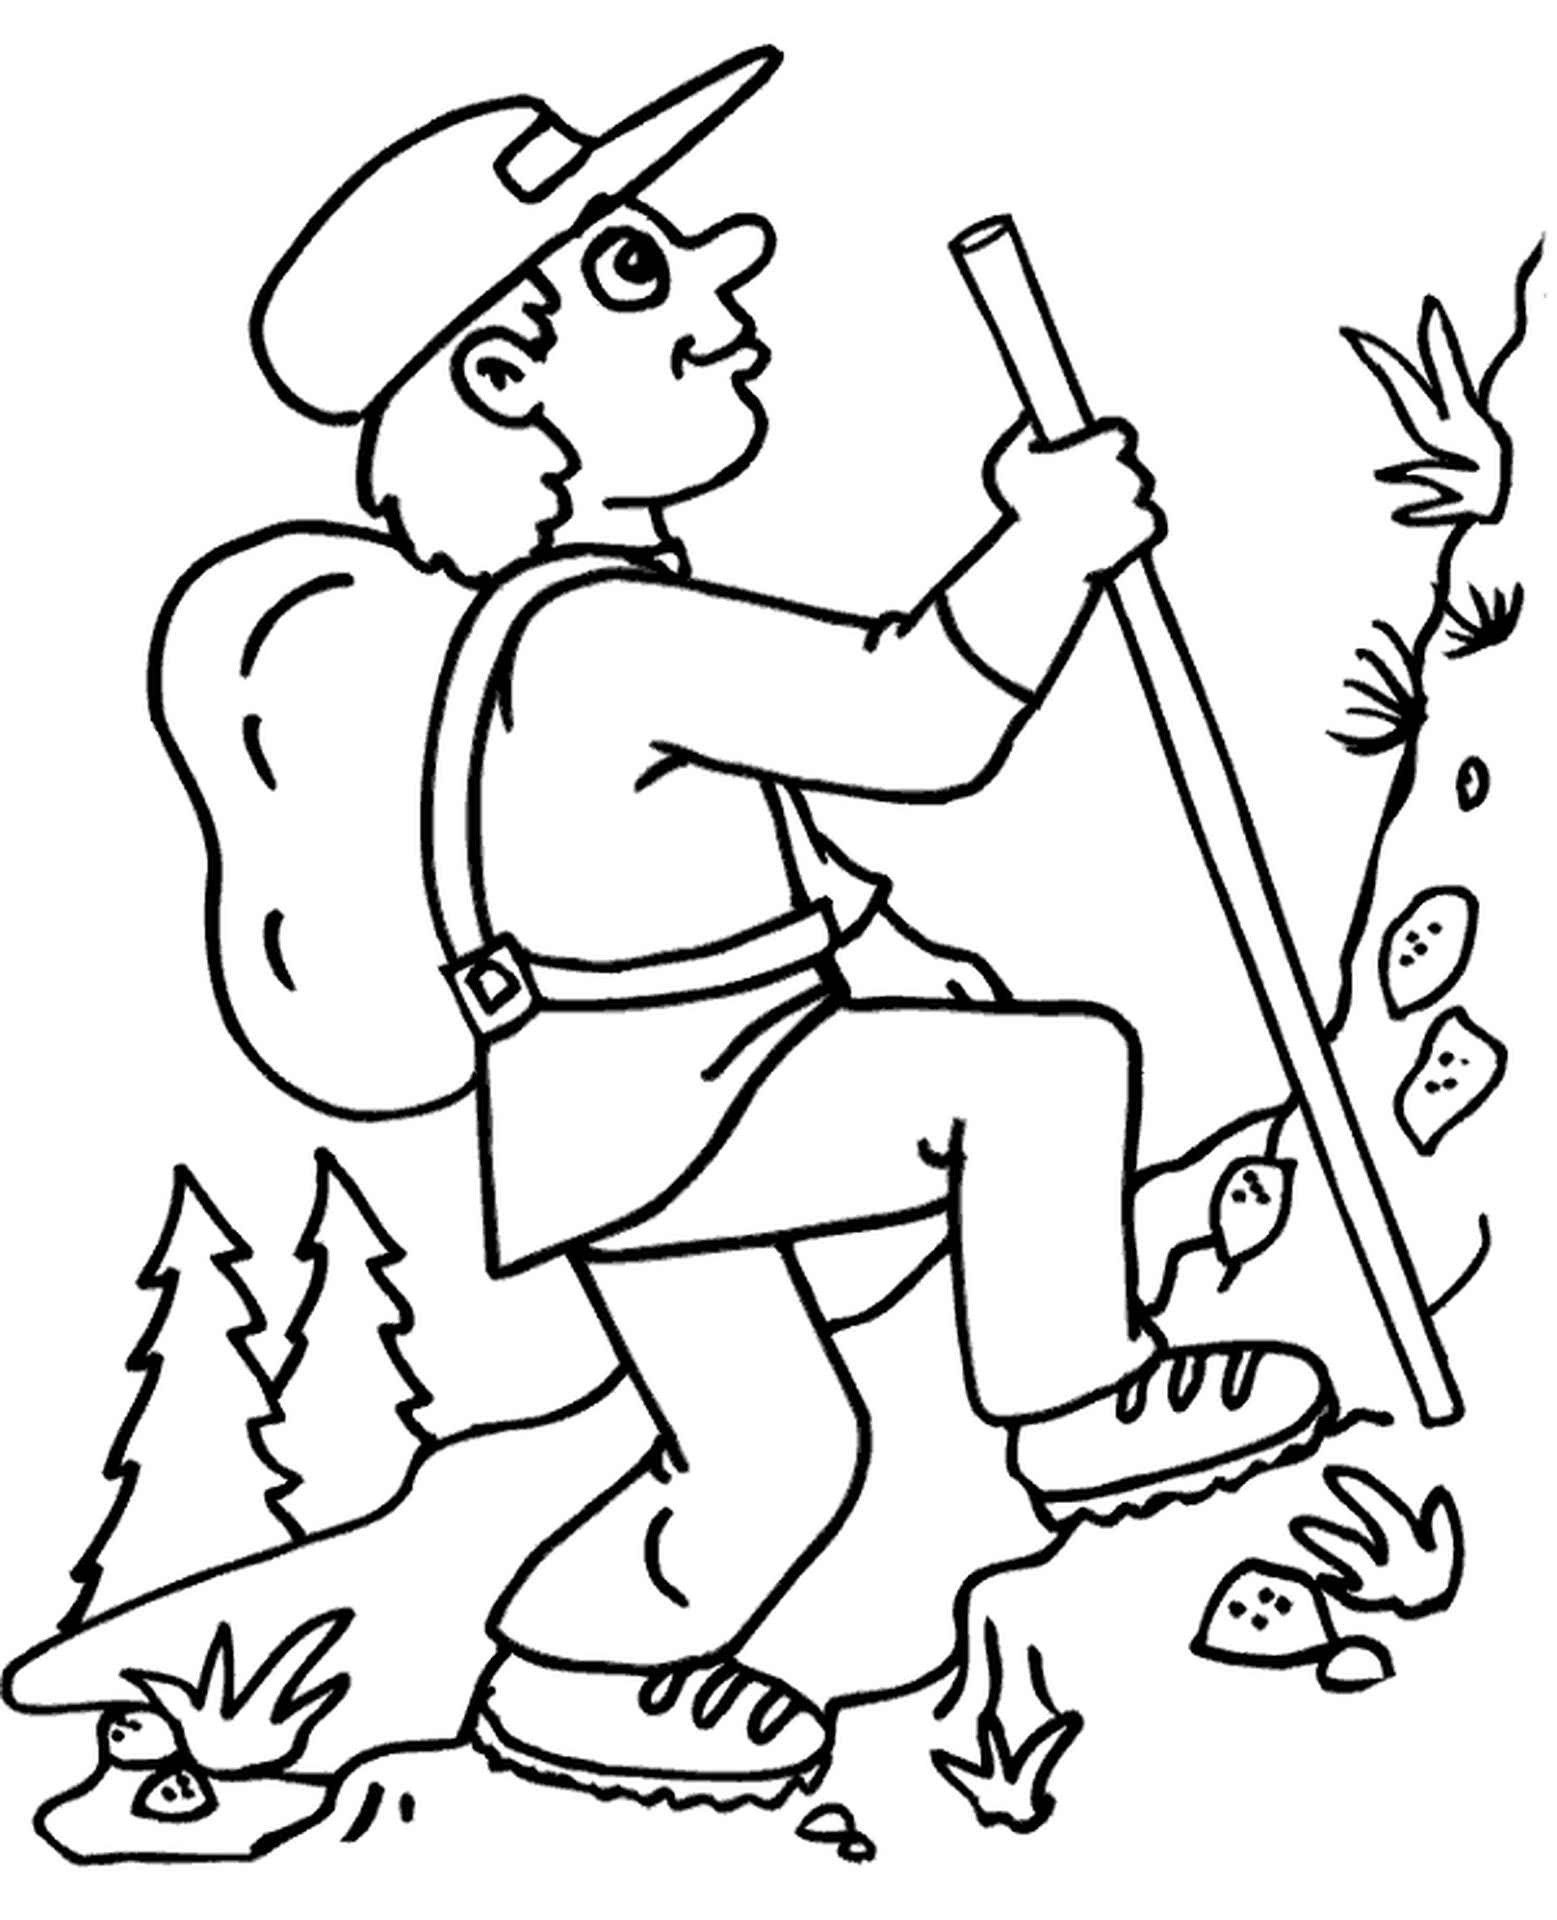 Climbing In The Mountains Coloring Page